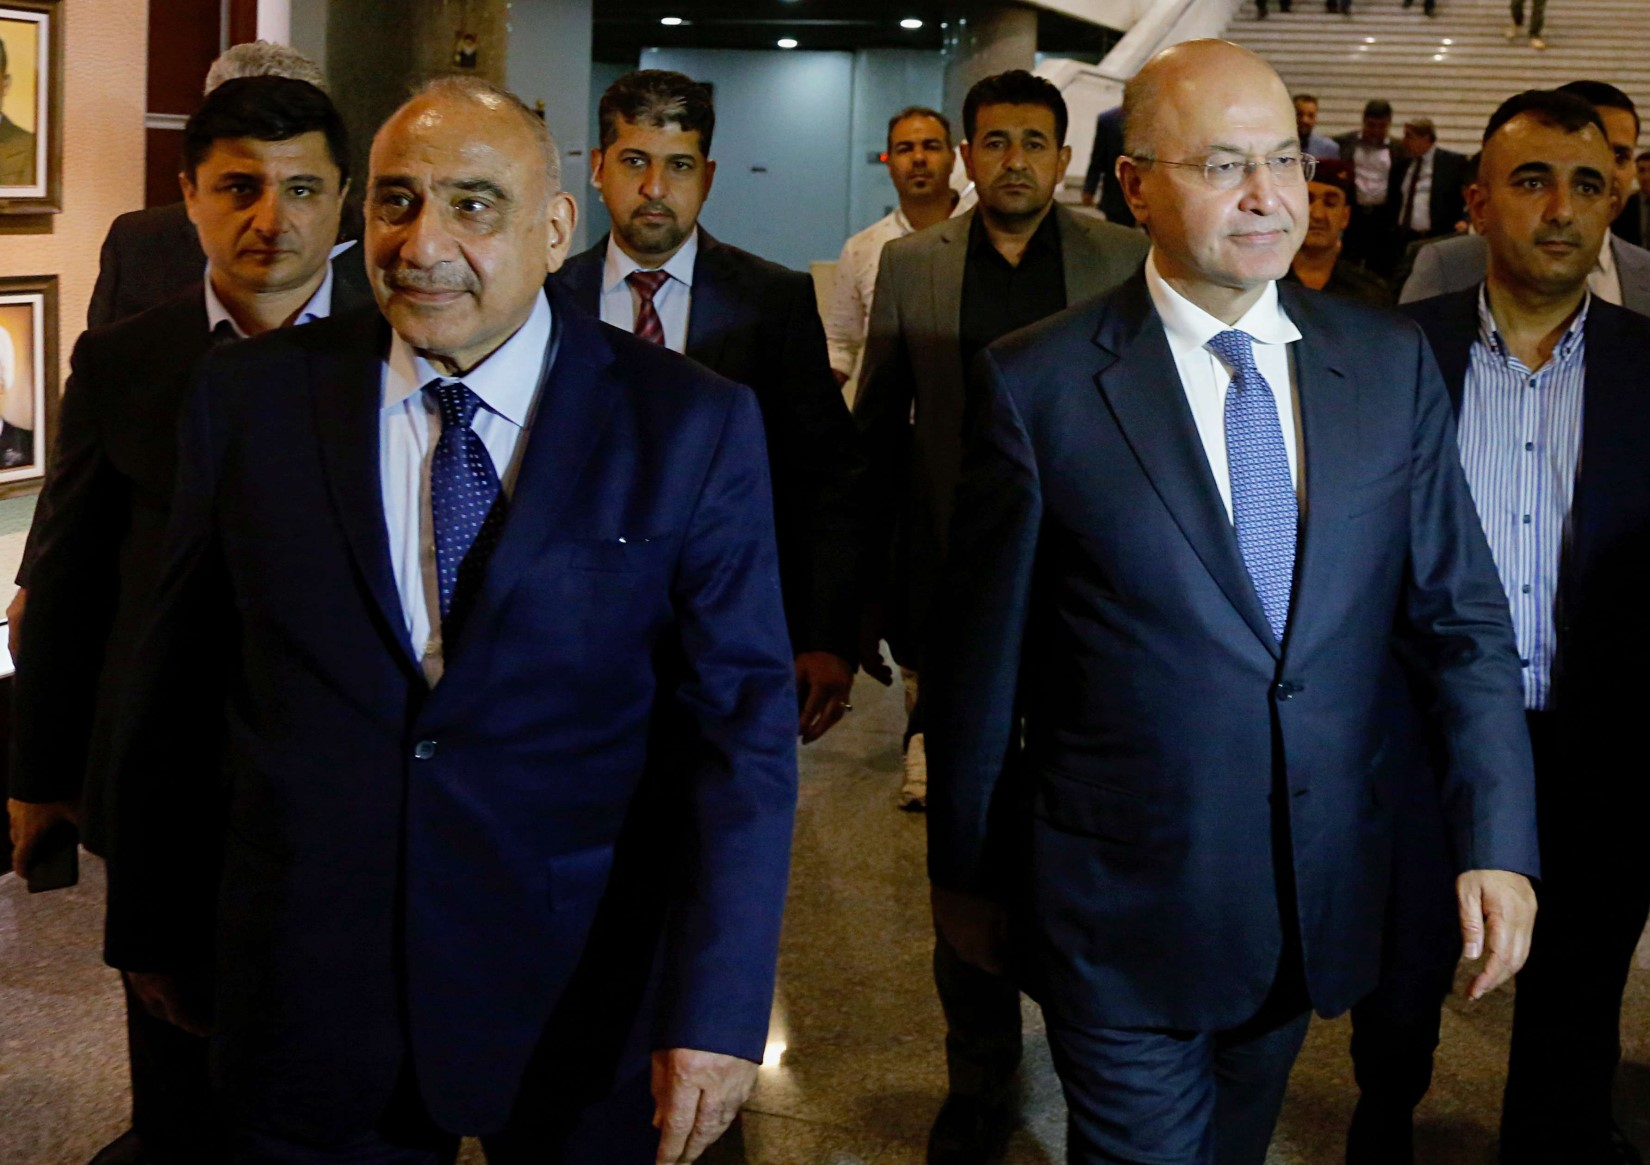 Iraq's new President Barham Salih, center right, walks with new Prime Minister Adel Abdul-Mahdi, center left, in the parliament building in Baghdad, Iraq, Tuesday, October 2, 2018. (AP)